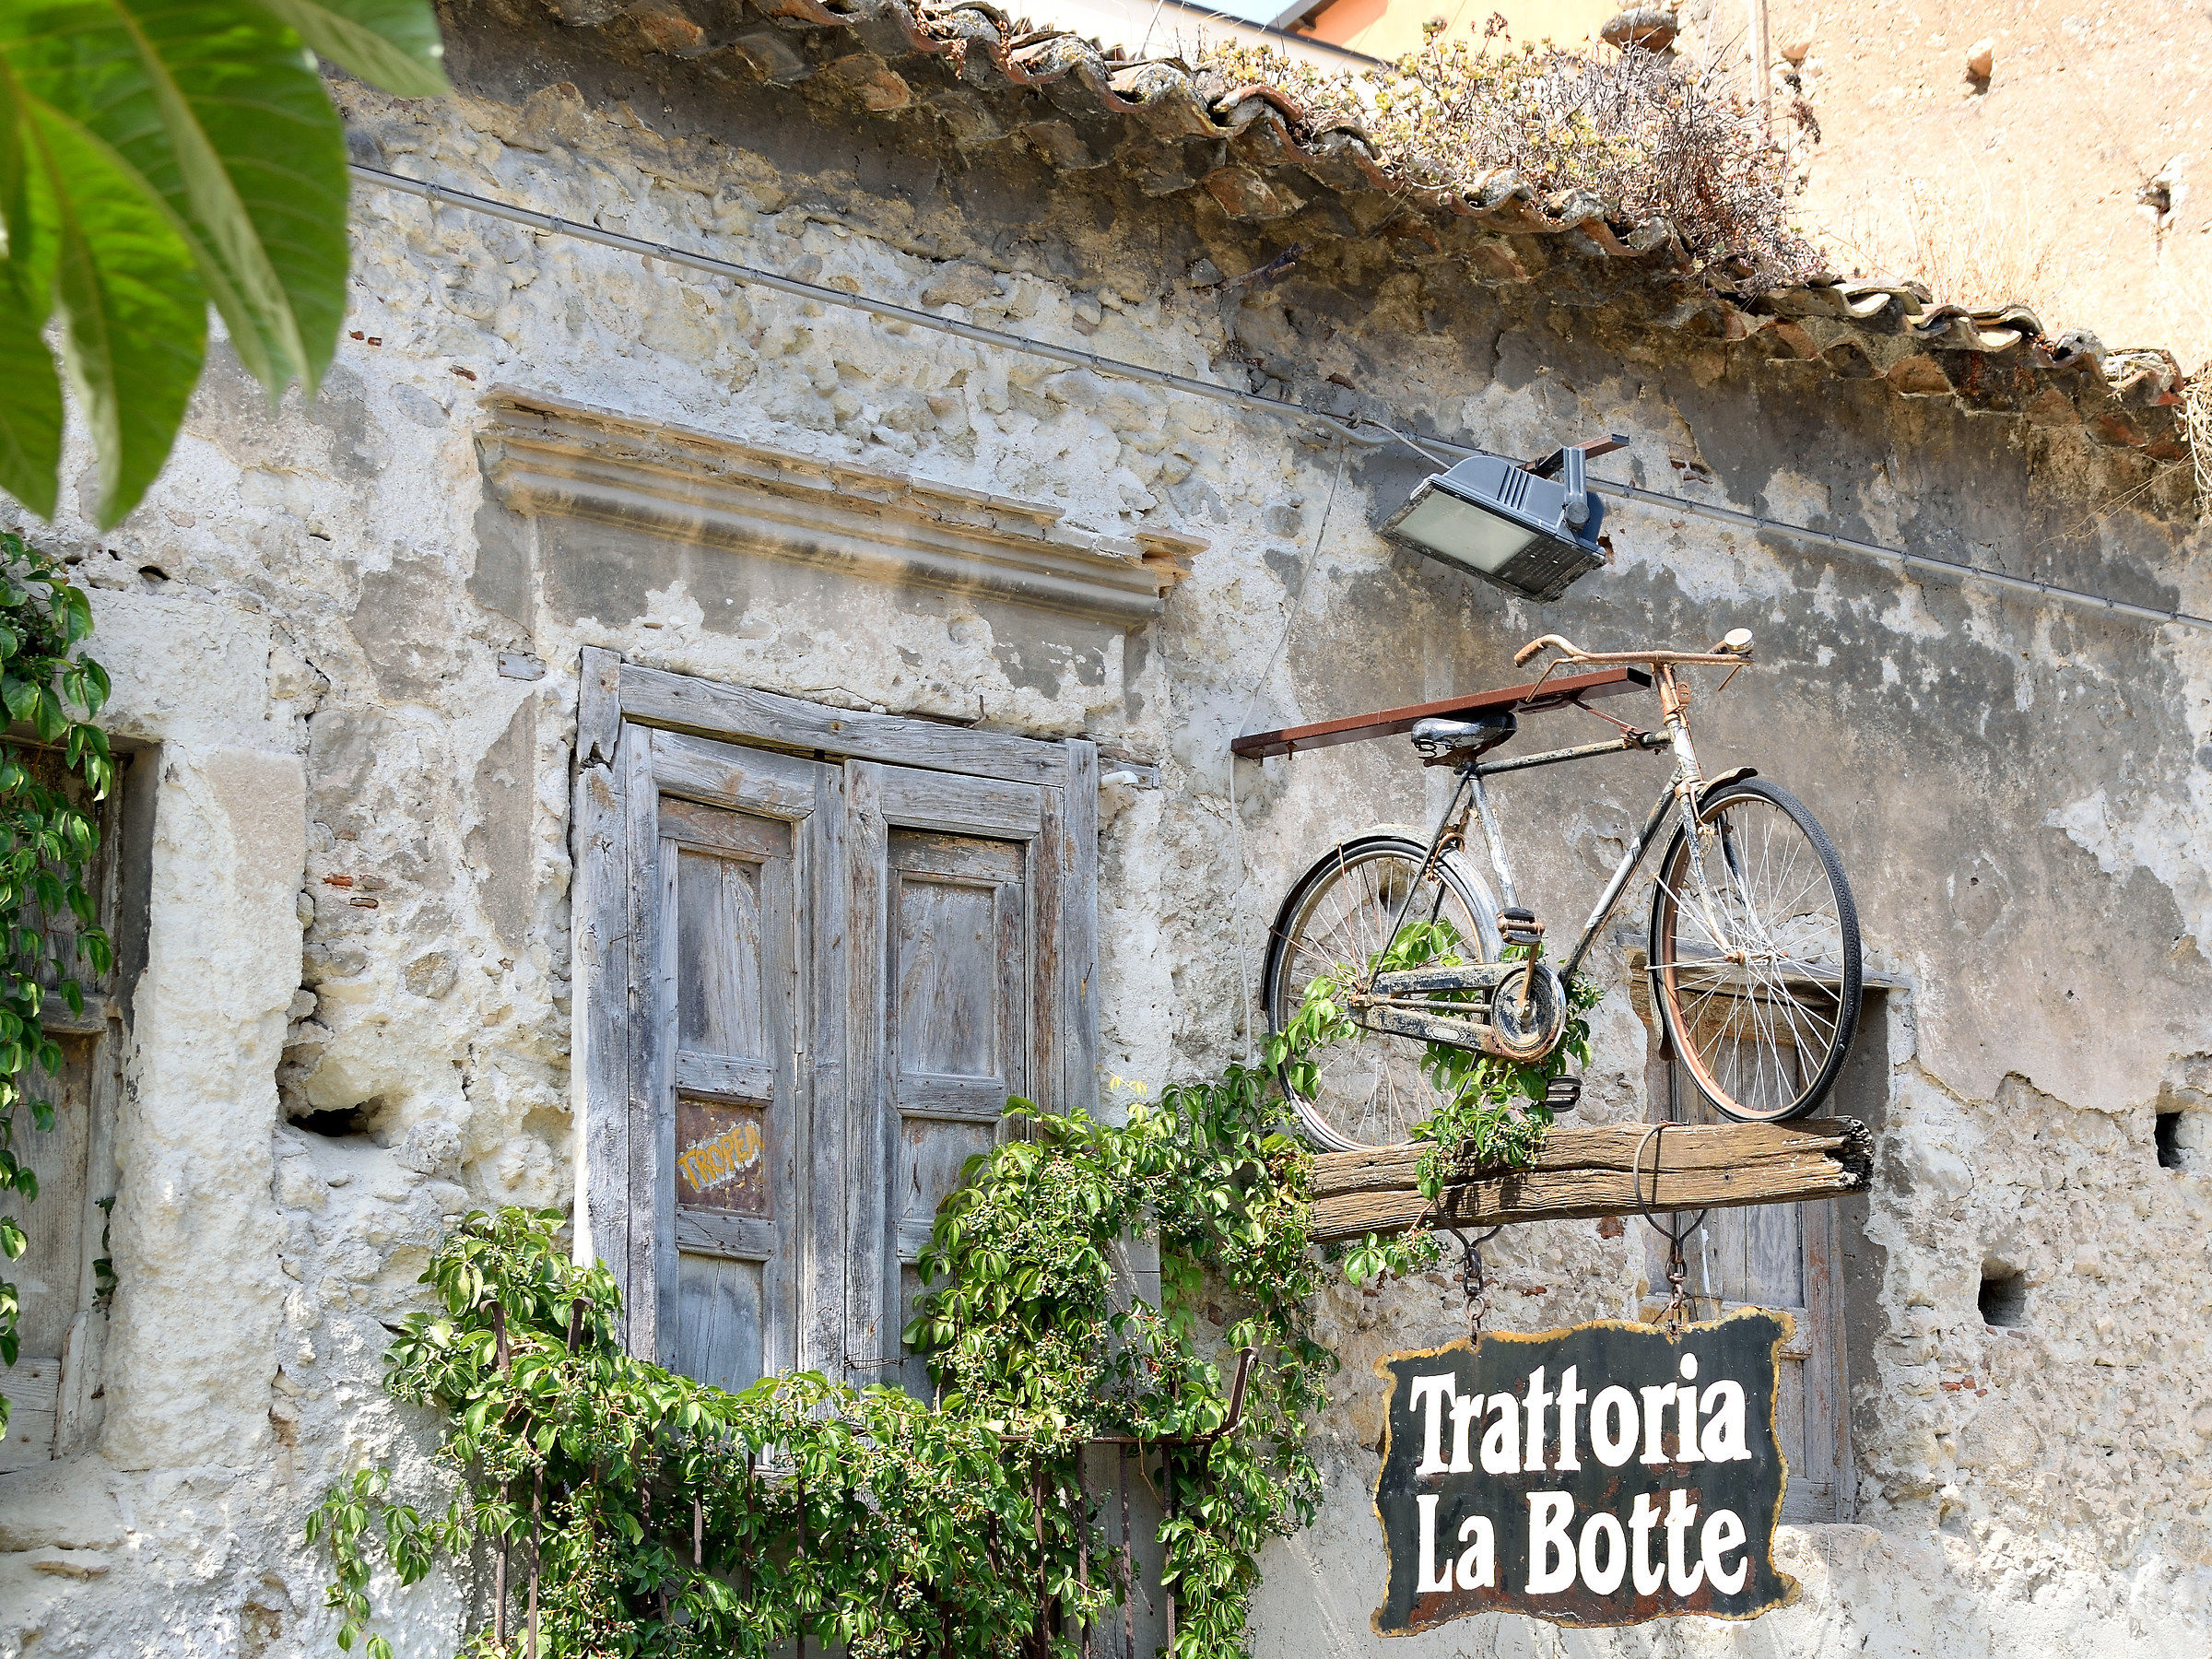 I do not understand the bike as taught for a trattoria...